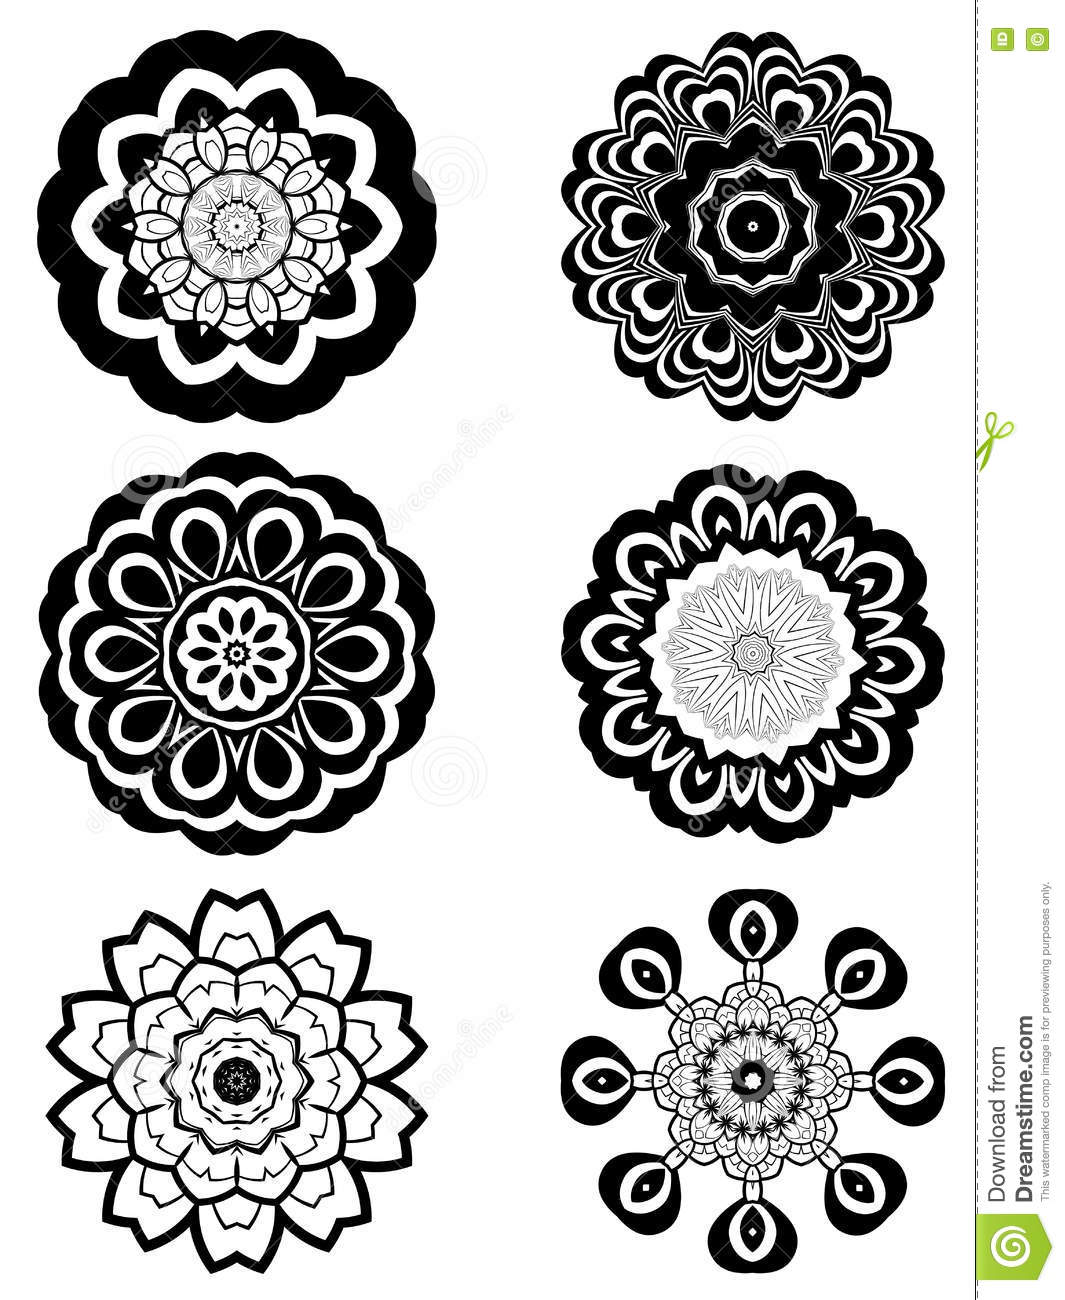 Simple black and white flowers stock vector illustration of style download simple black and white flowers stock vector illustration of style power 74006340 mightylinksfo